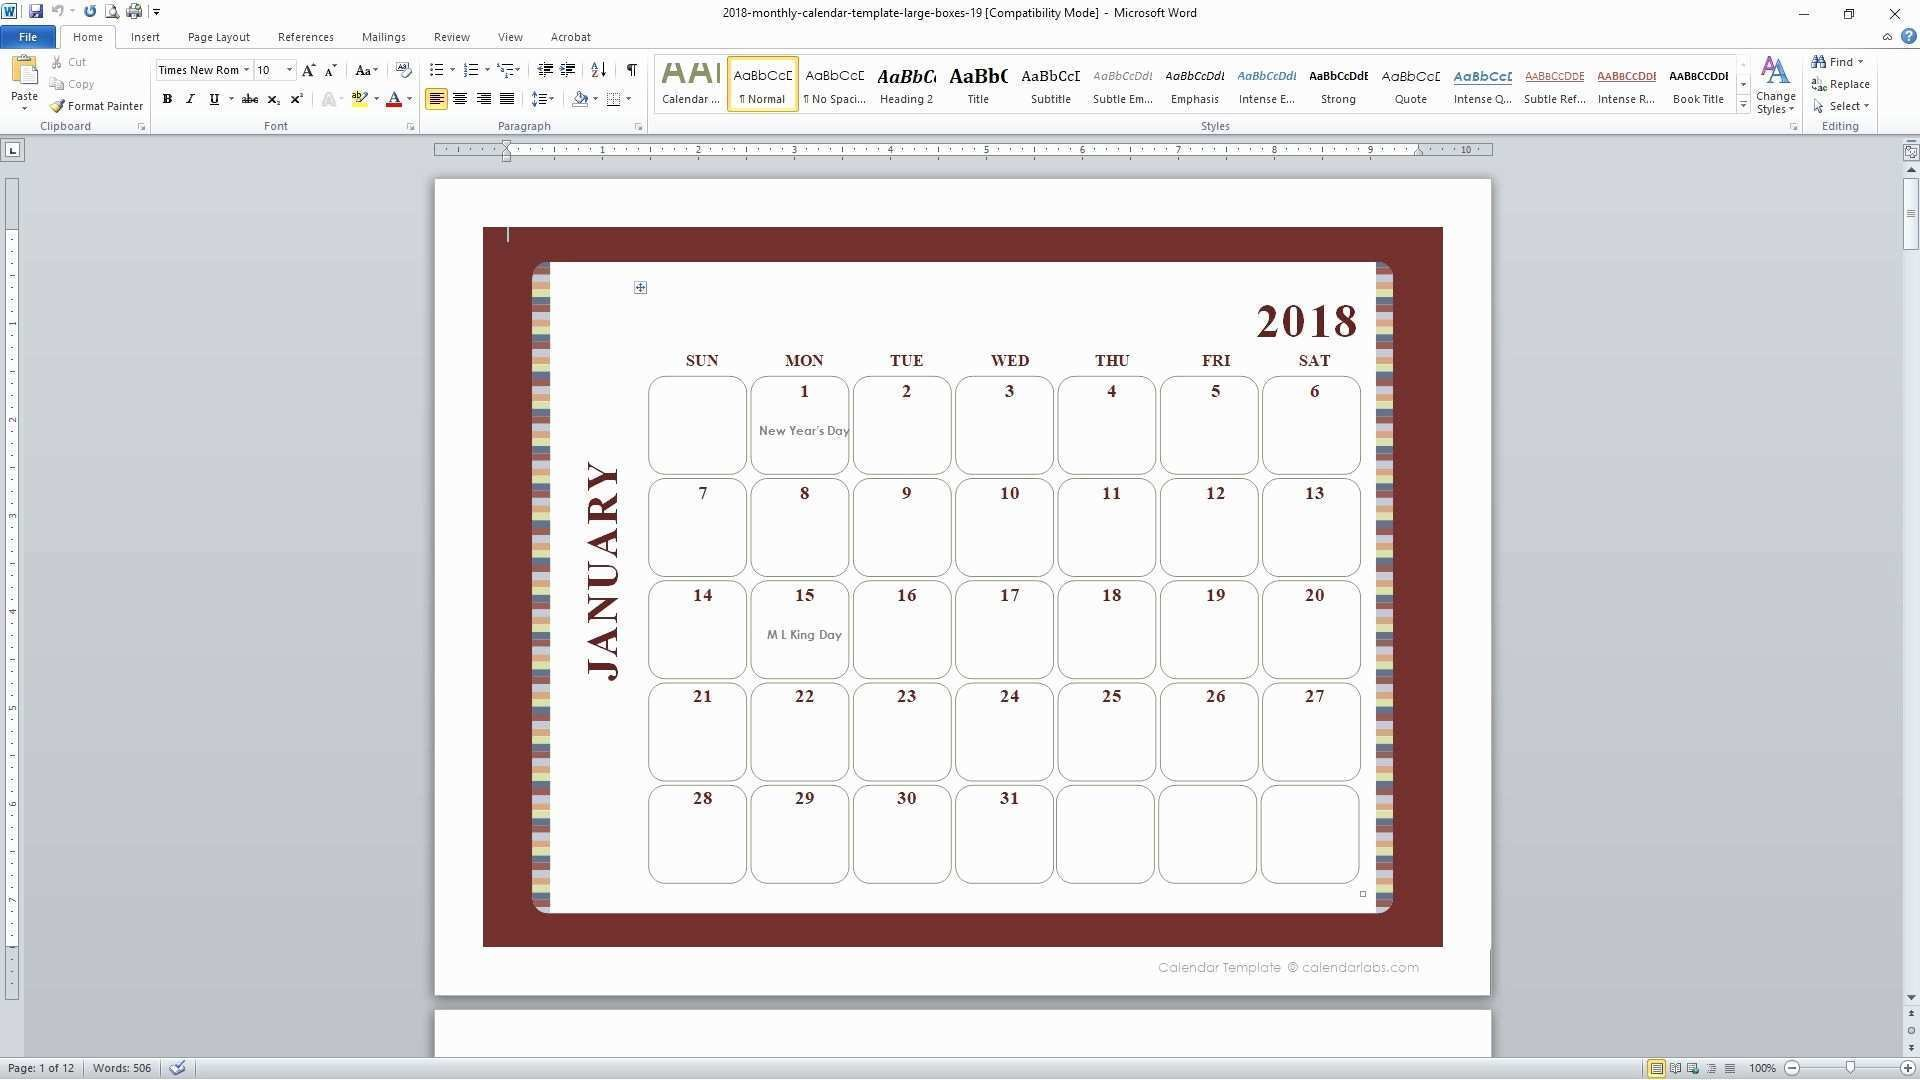 Calendar Template In Word 2010 s Personalize A For Microsoft Mo